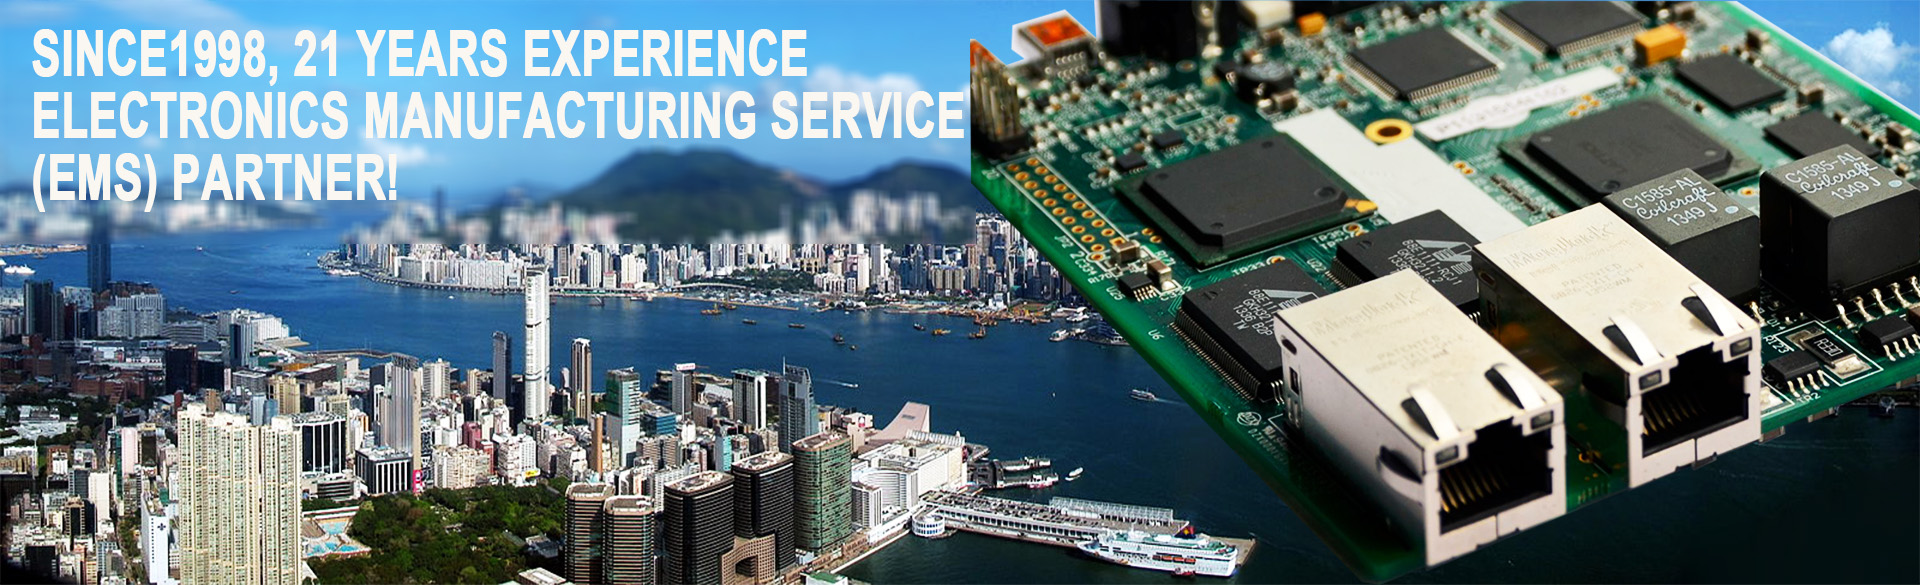 Since1998, 21 Year Experience professional Electronics Manufacturing Service (EMS) partner!